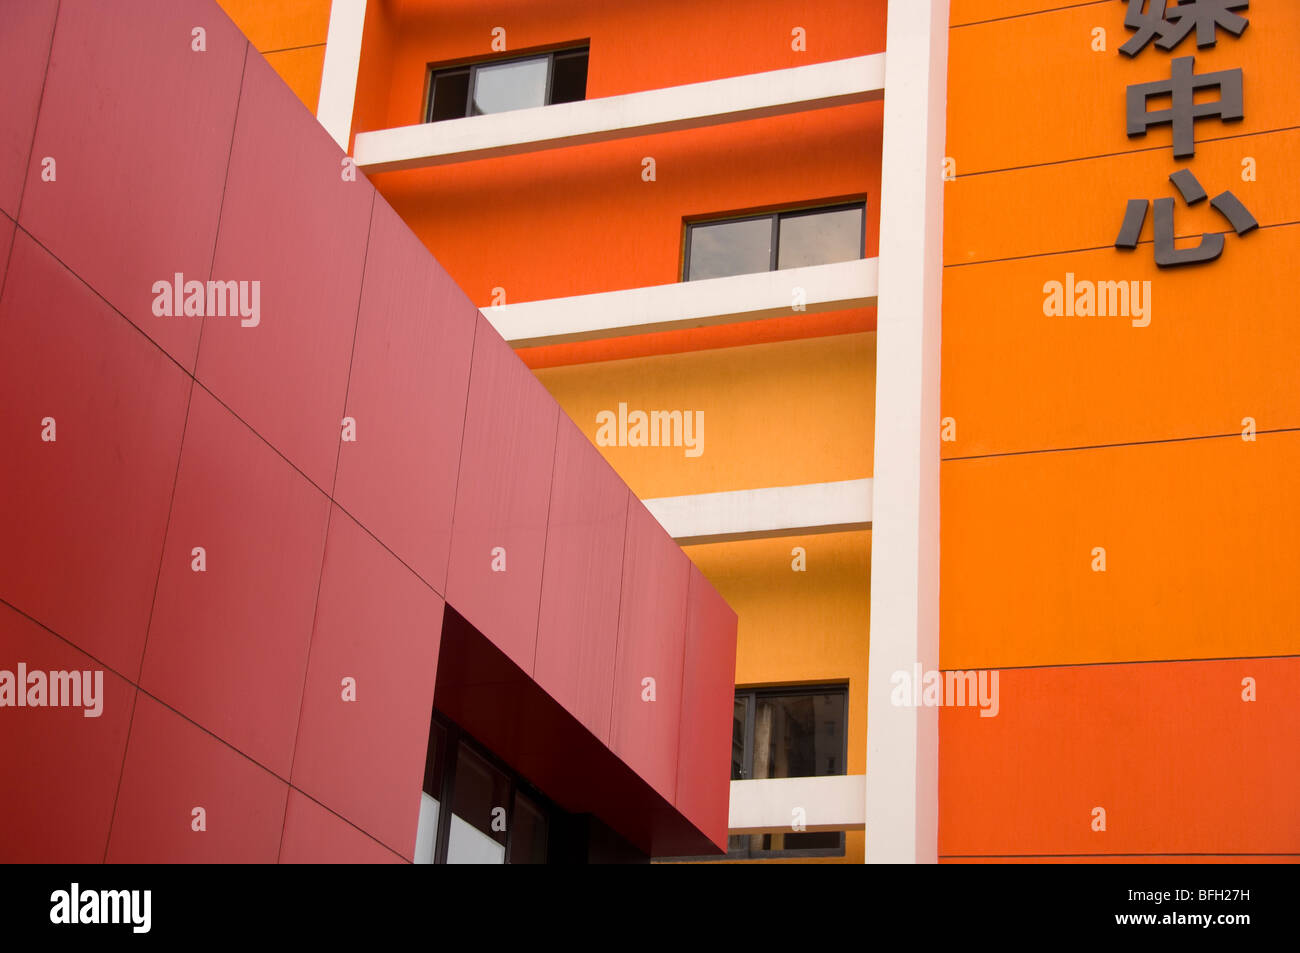 Modern colorful architecture in Shanghai, China. - Stock Image